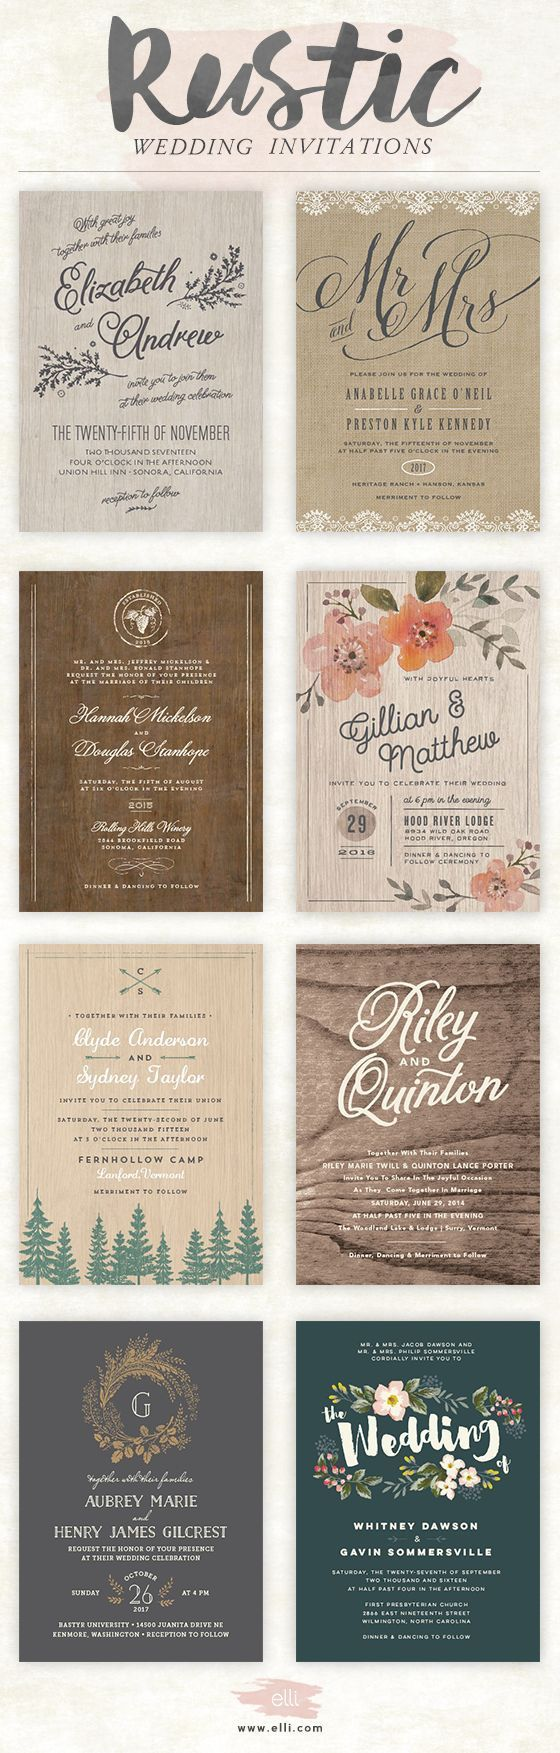 sister wedding invitation card wordings%0A Rustic wedding invitations   bellacollina com   Bella Collina Weddings  Wedding  WordingWedding